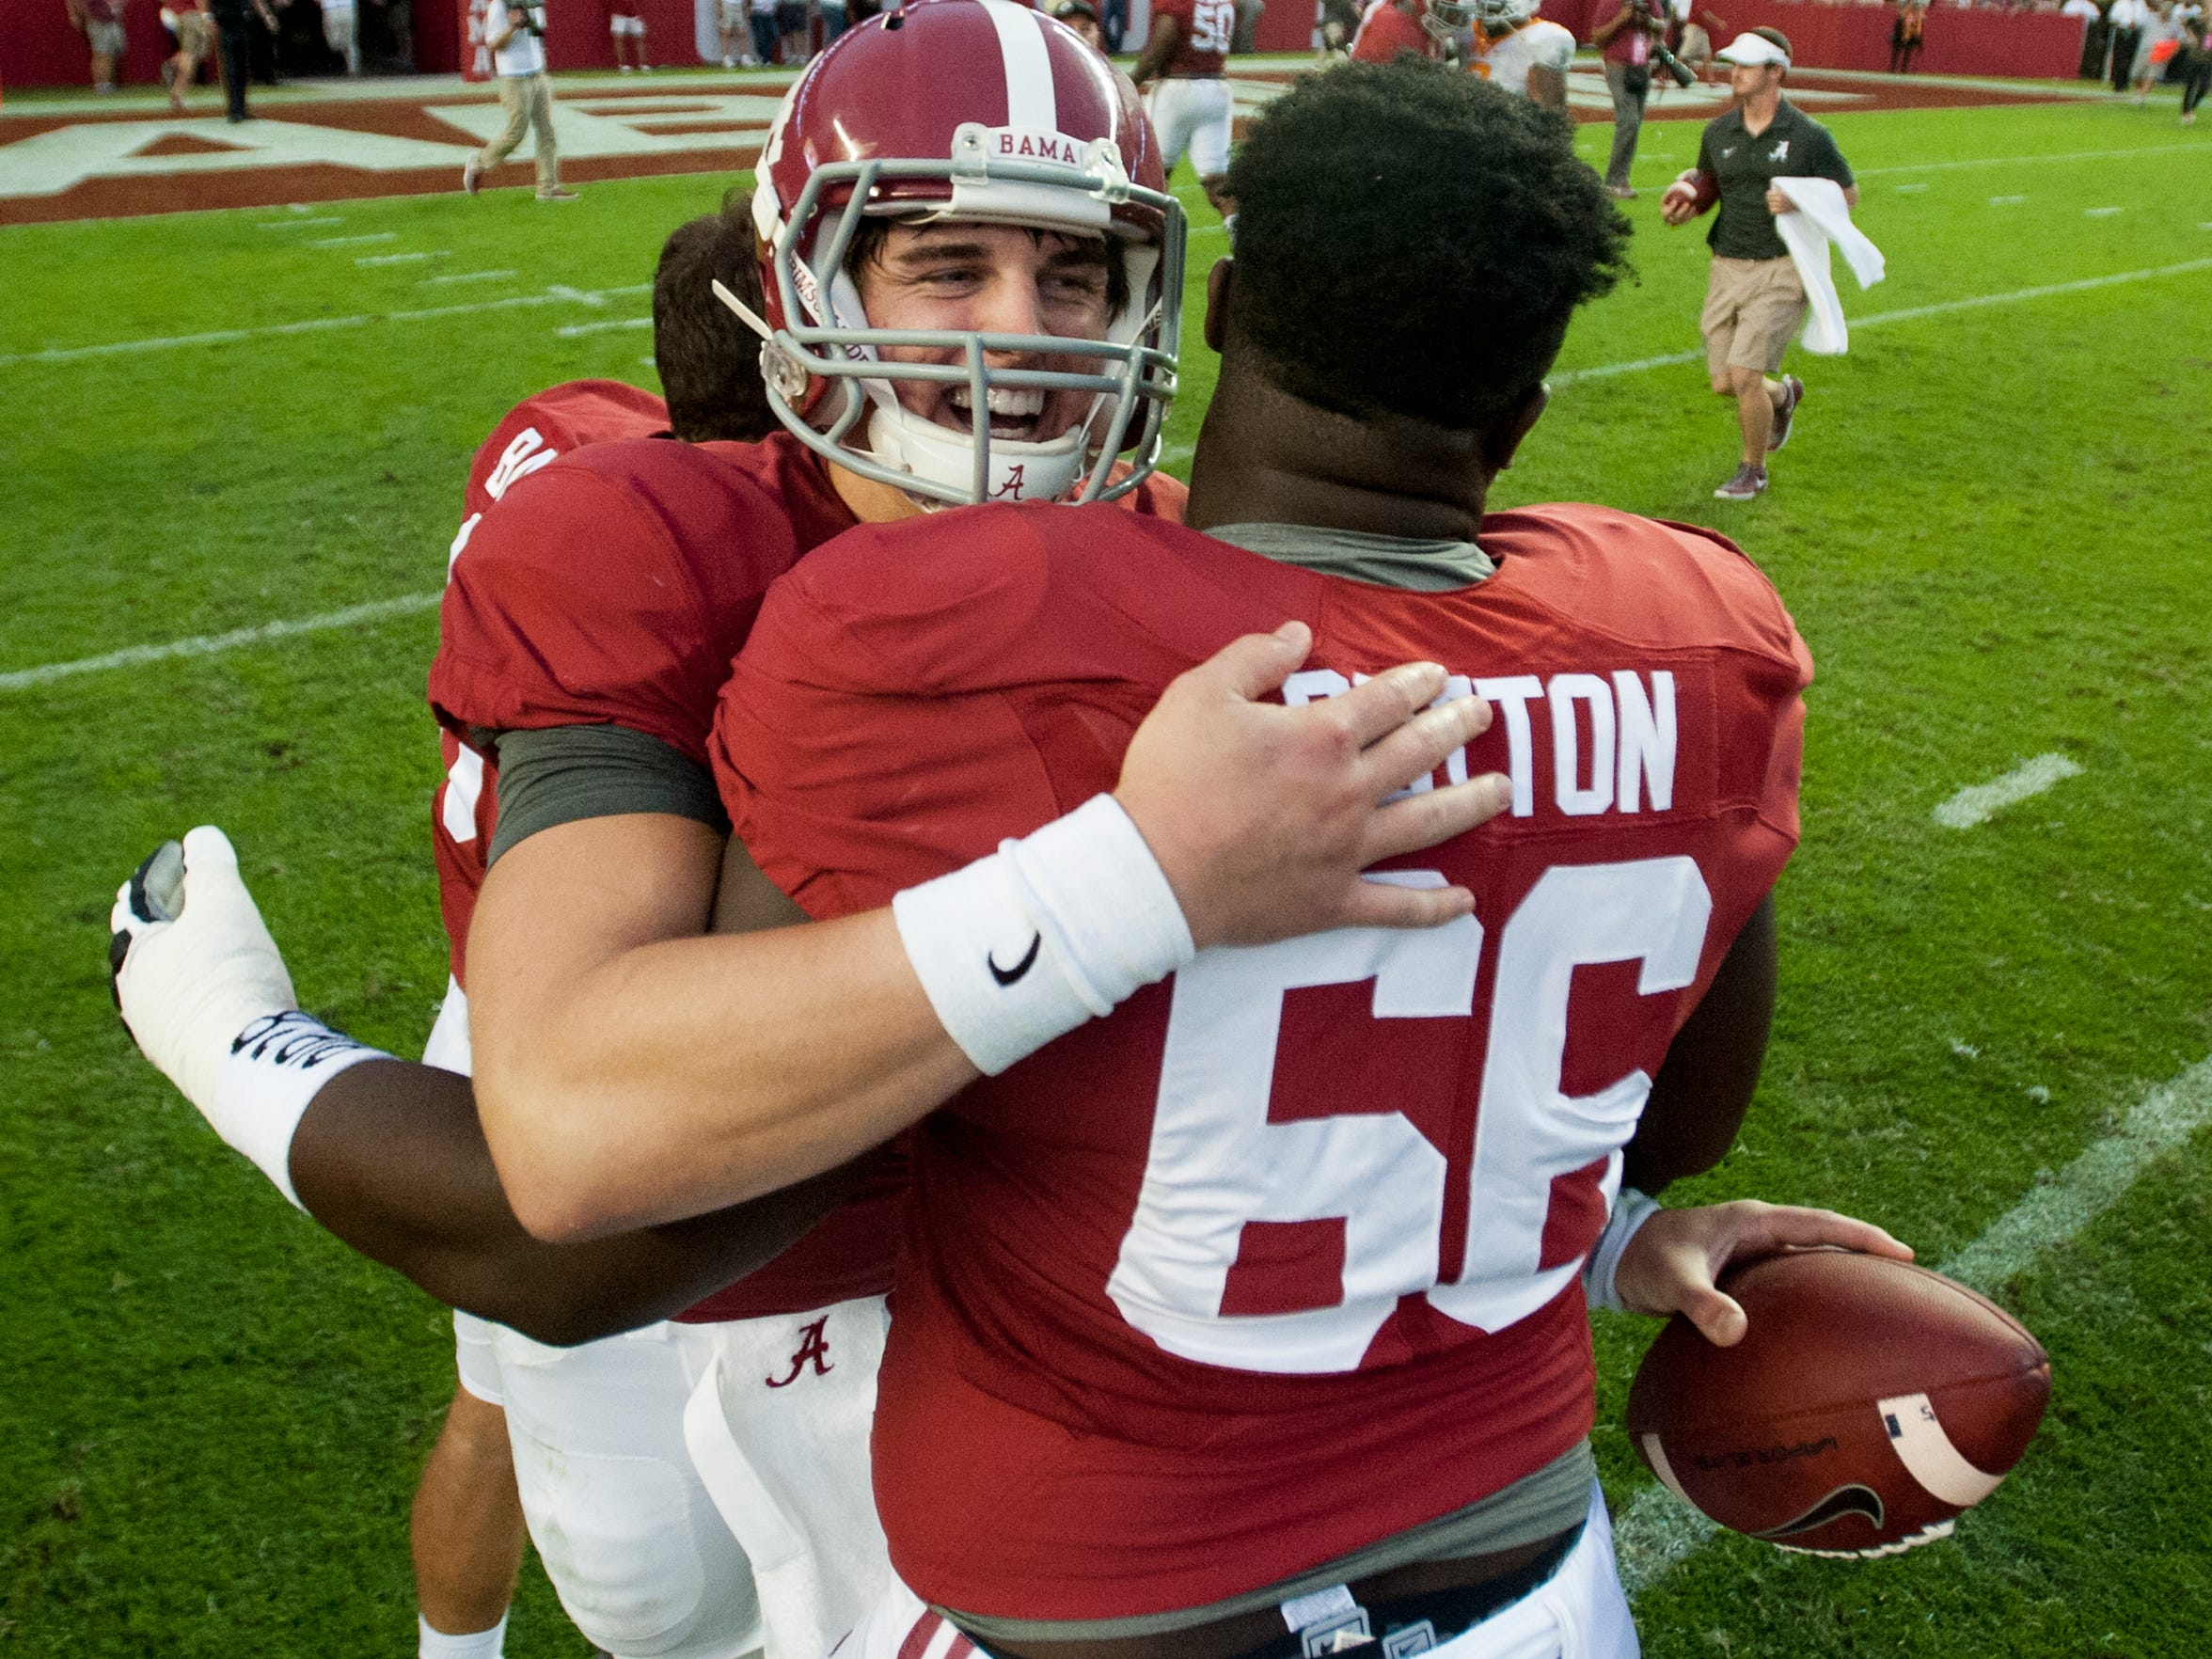 Alabama quarterback Jake Coker (14) celebrates with offensive lineman Lester Cotton (66) after the come from behind win over Tennessee at Bryant-Denny Stadium in Tuscaloosa, Ala. on Saturday October 24, 2015. (Mickey Welsh / Montgomery Advertiser)